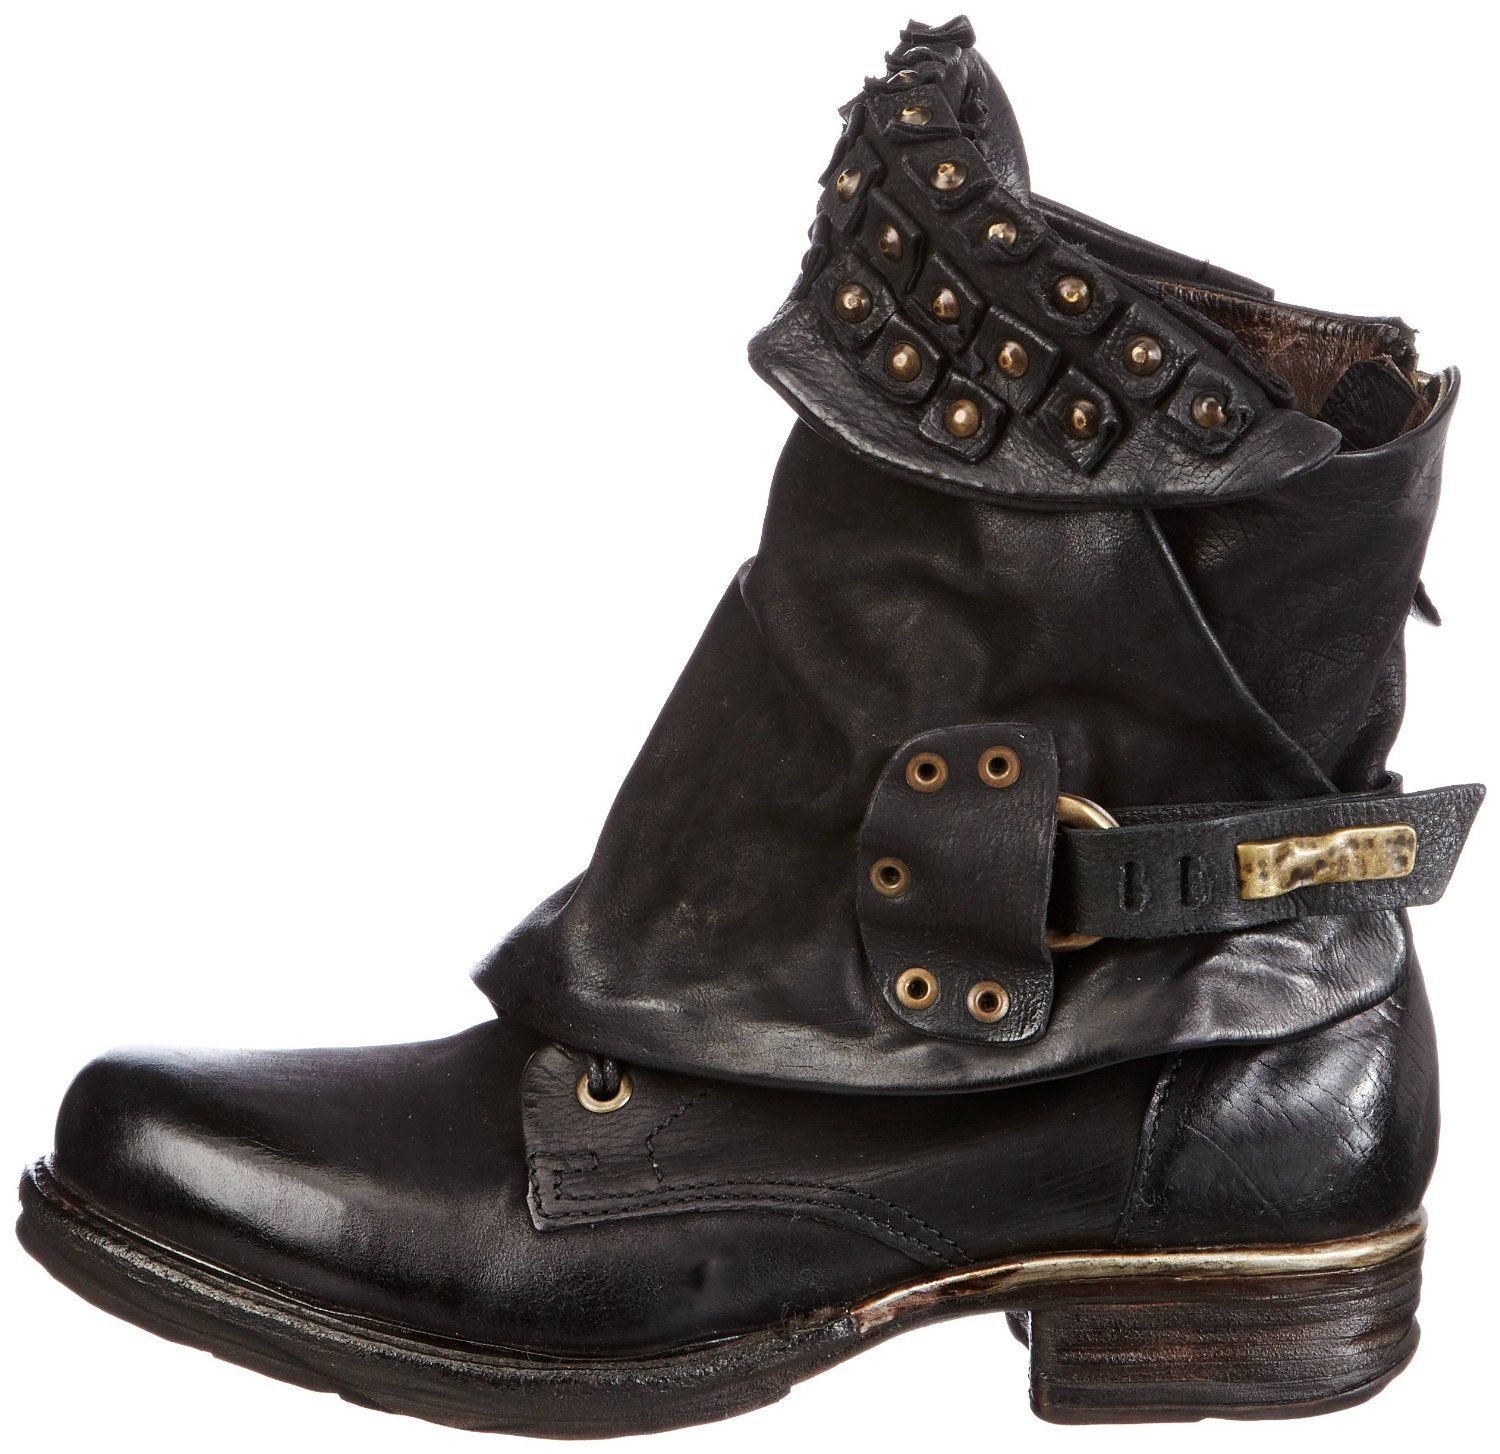 ebb9ed5fad0de Airstep - Women's / boots | Apocalyptic & Dystopian Style | Womens ...